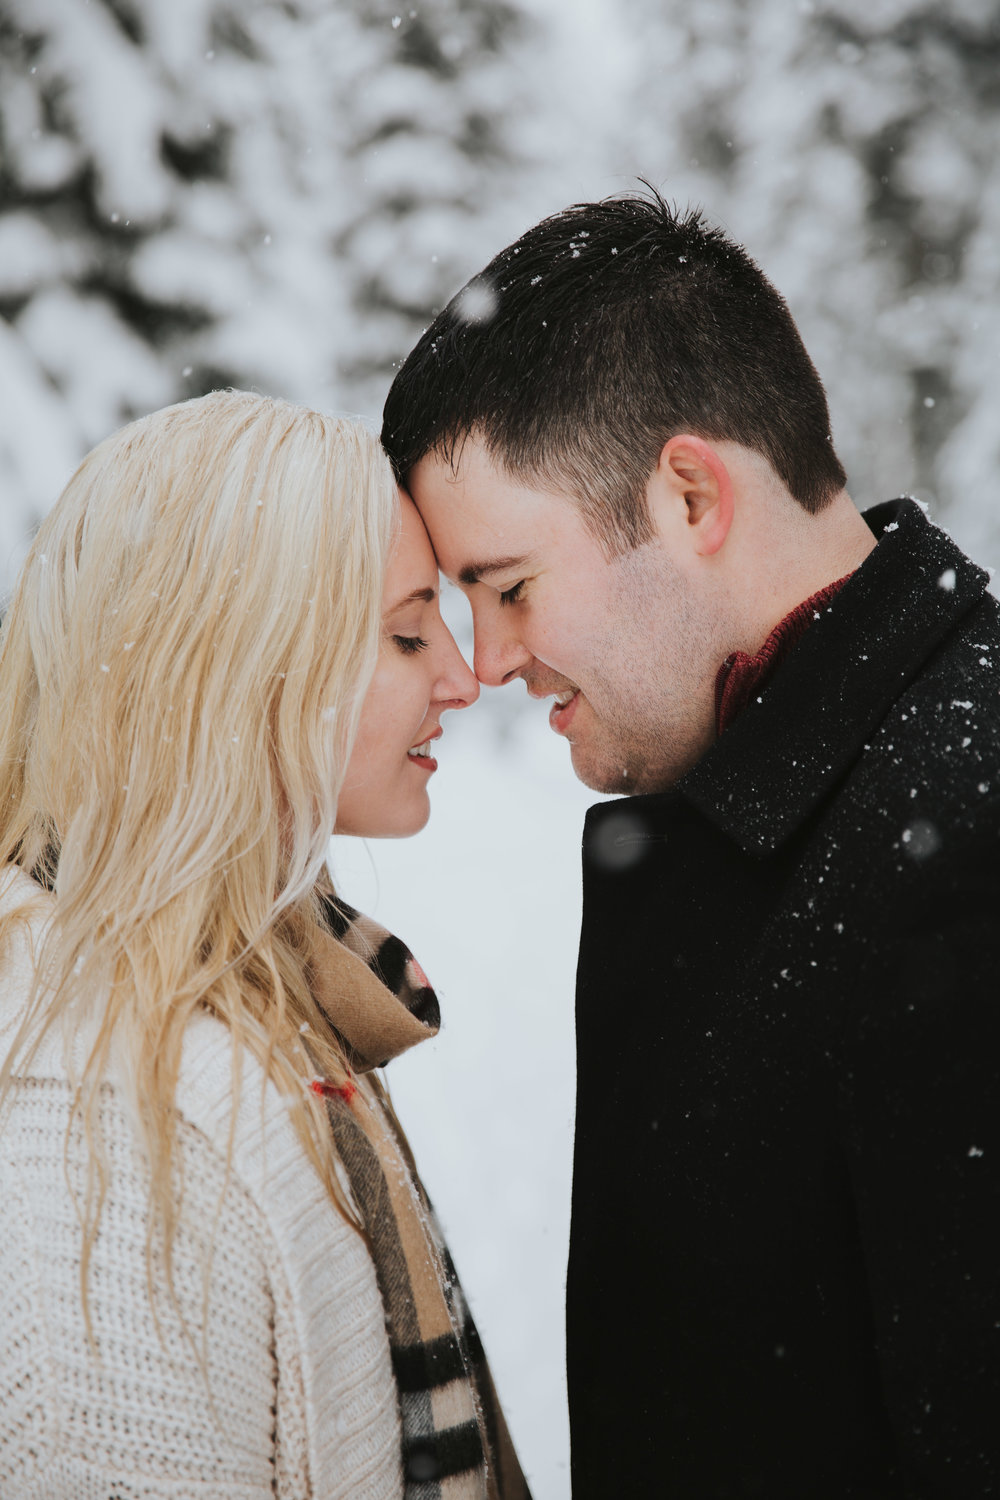 Maddie and Connor   - This couple wanted a snowy engagement shoot. I honestly had never shot at Snoqualmie before this shoot, but went up the weekend prior to scope out some locations. The day ended up being a total snowstorm, getting about 4 inches in a few hours, but the brightness and airy clean light it created made me obsessed. I love this photo because of their energy and the depth. They were so natural with each other and me and the snow added so much depth to every picture.